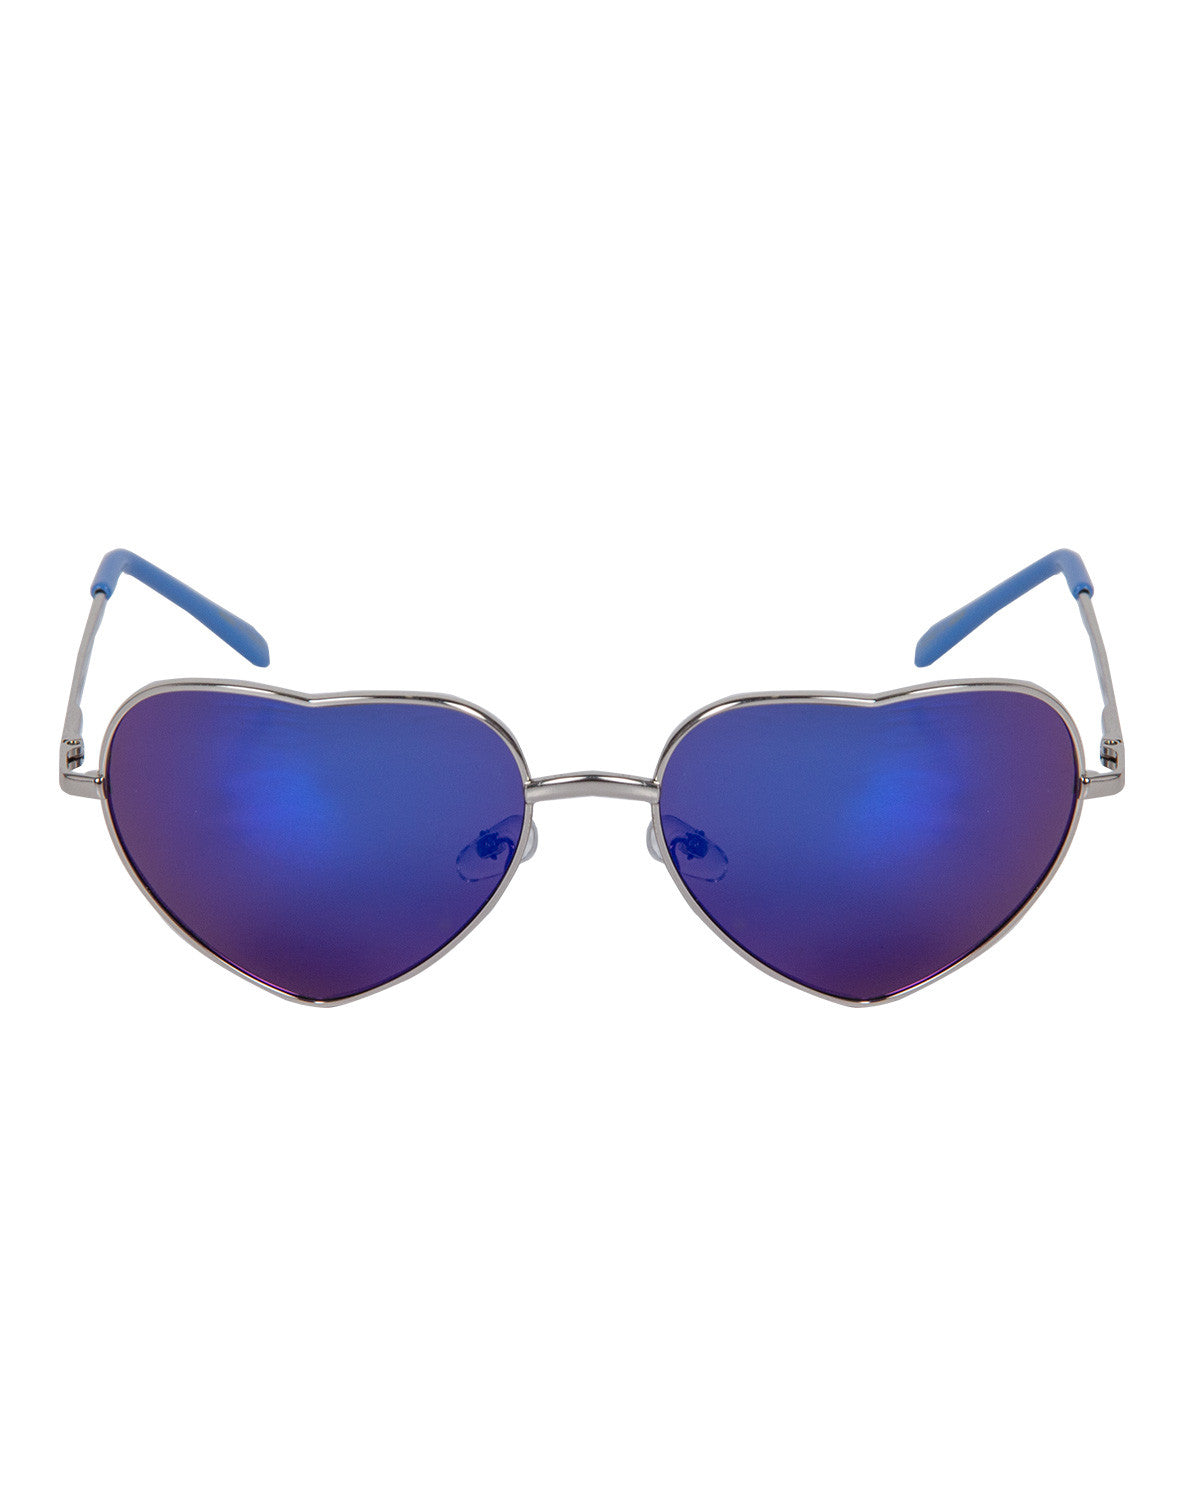 Mirrored Heart Shaped Sunnies (+ Colors)